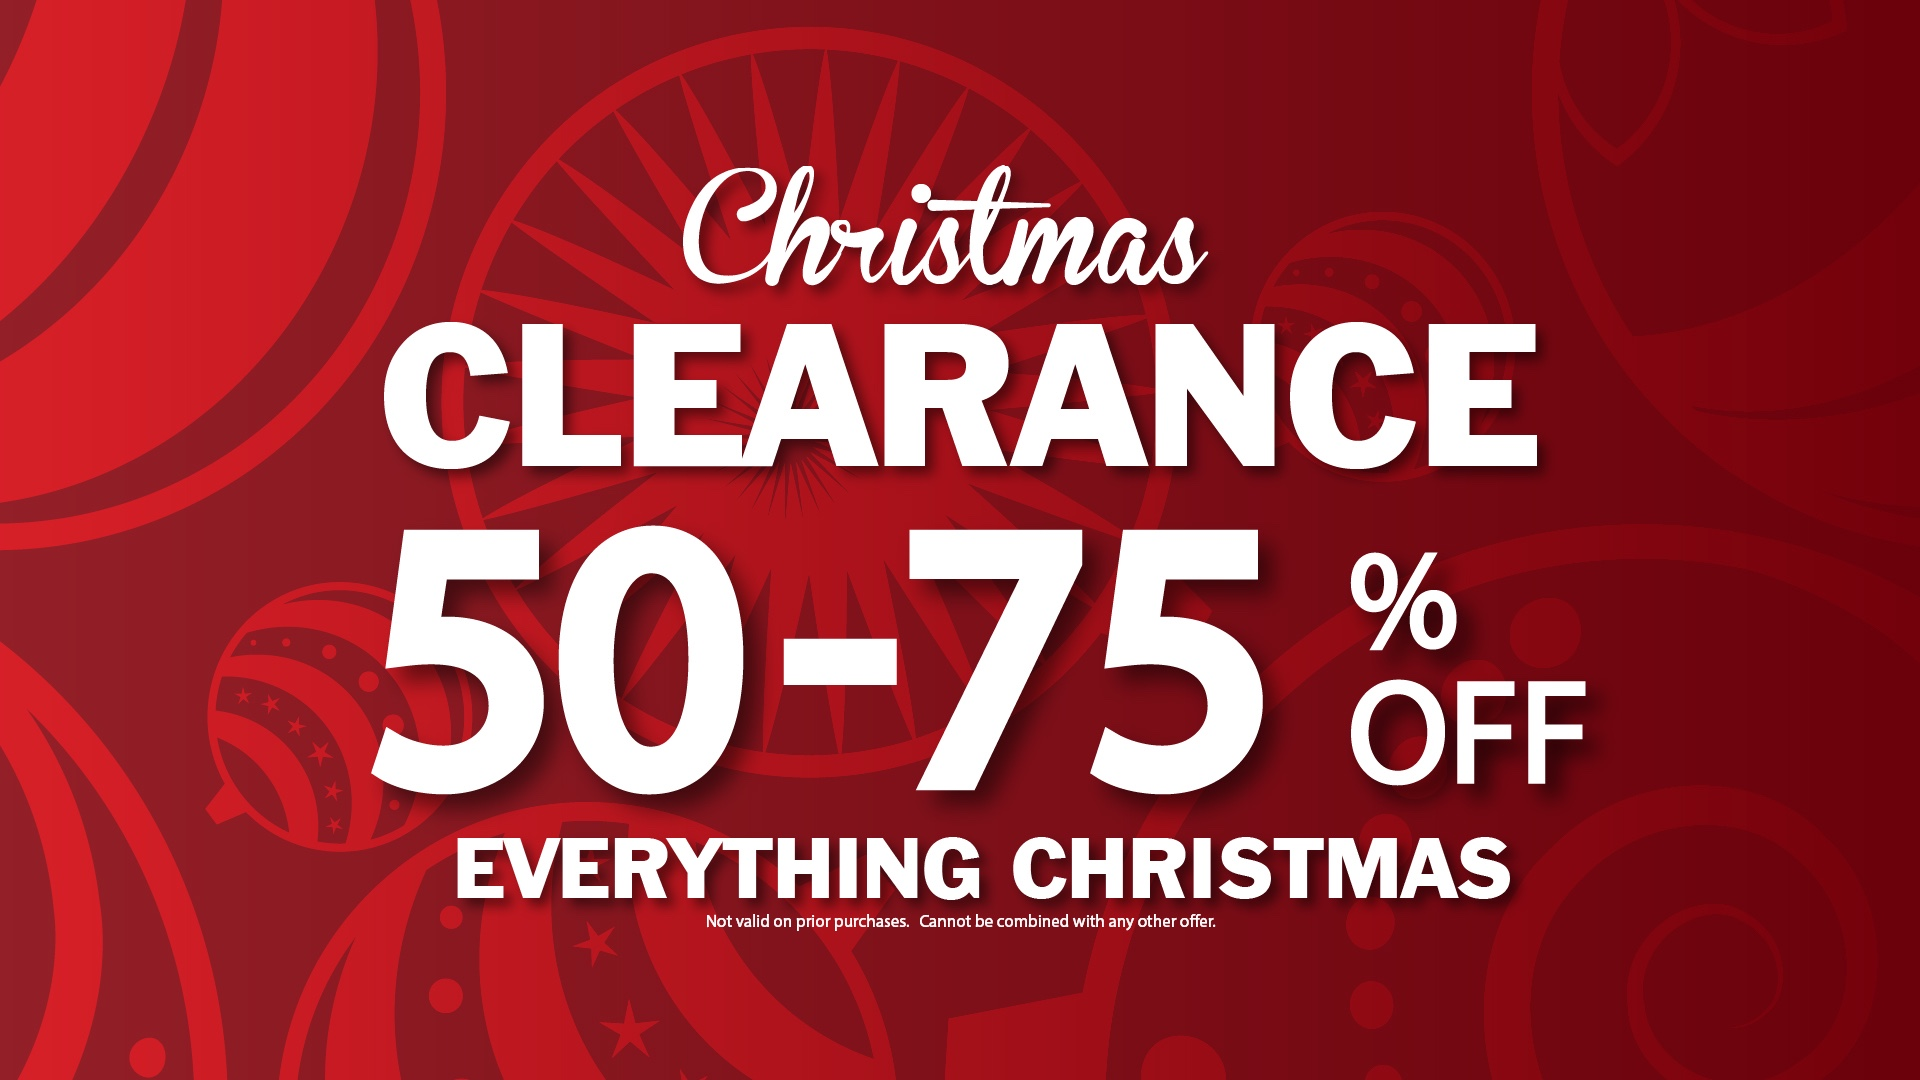 Christmas Clearance 75 Off.Christmas Clearance Save 50 75 Off Everything Christmas